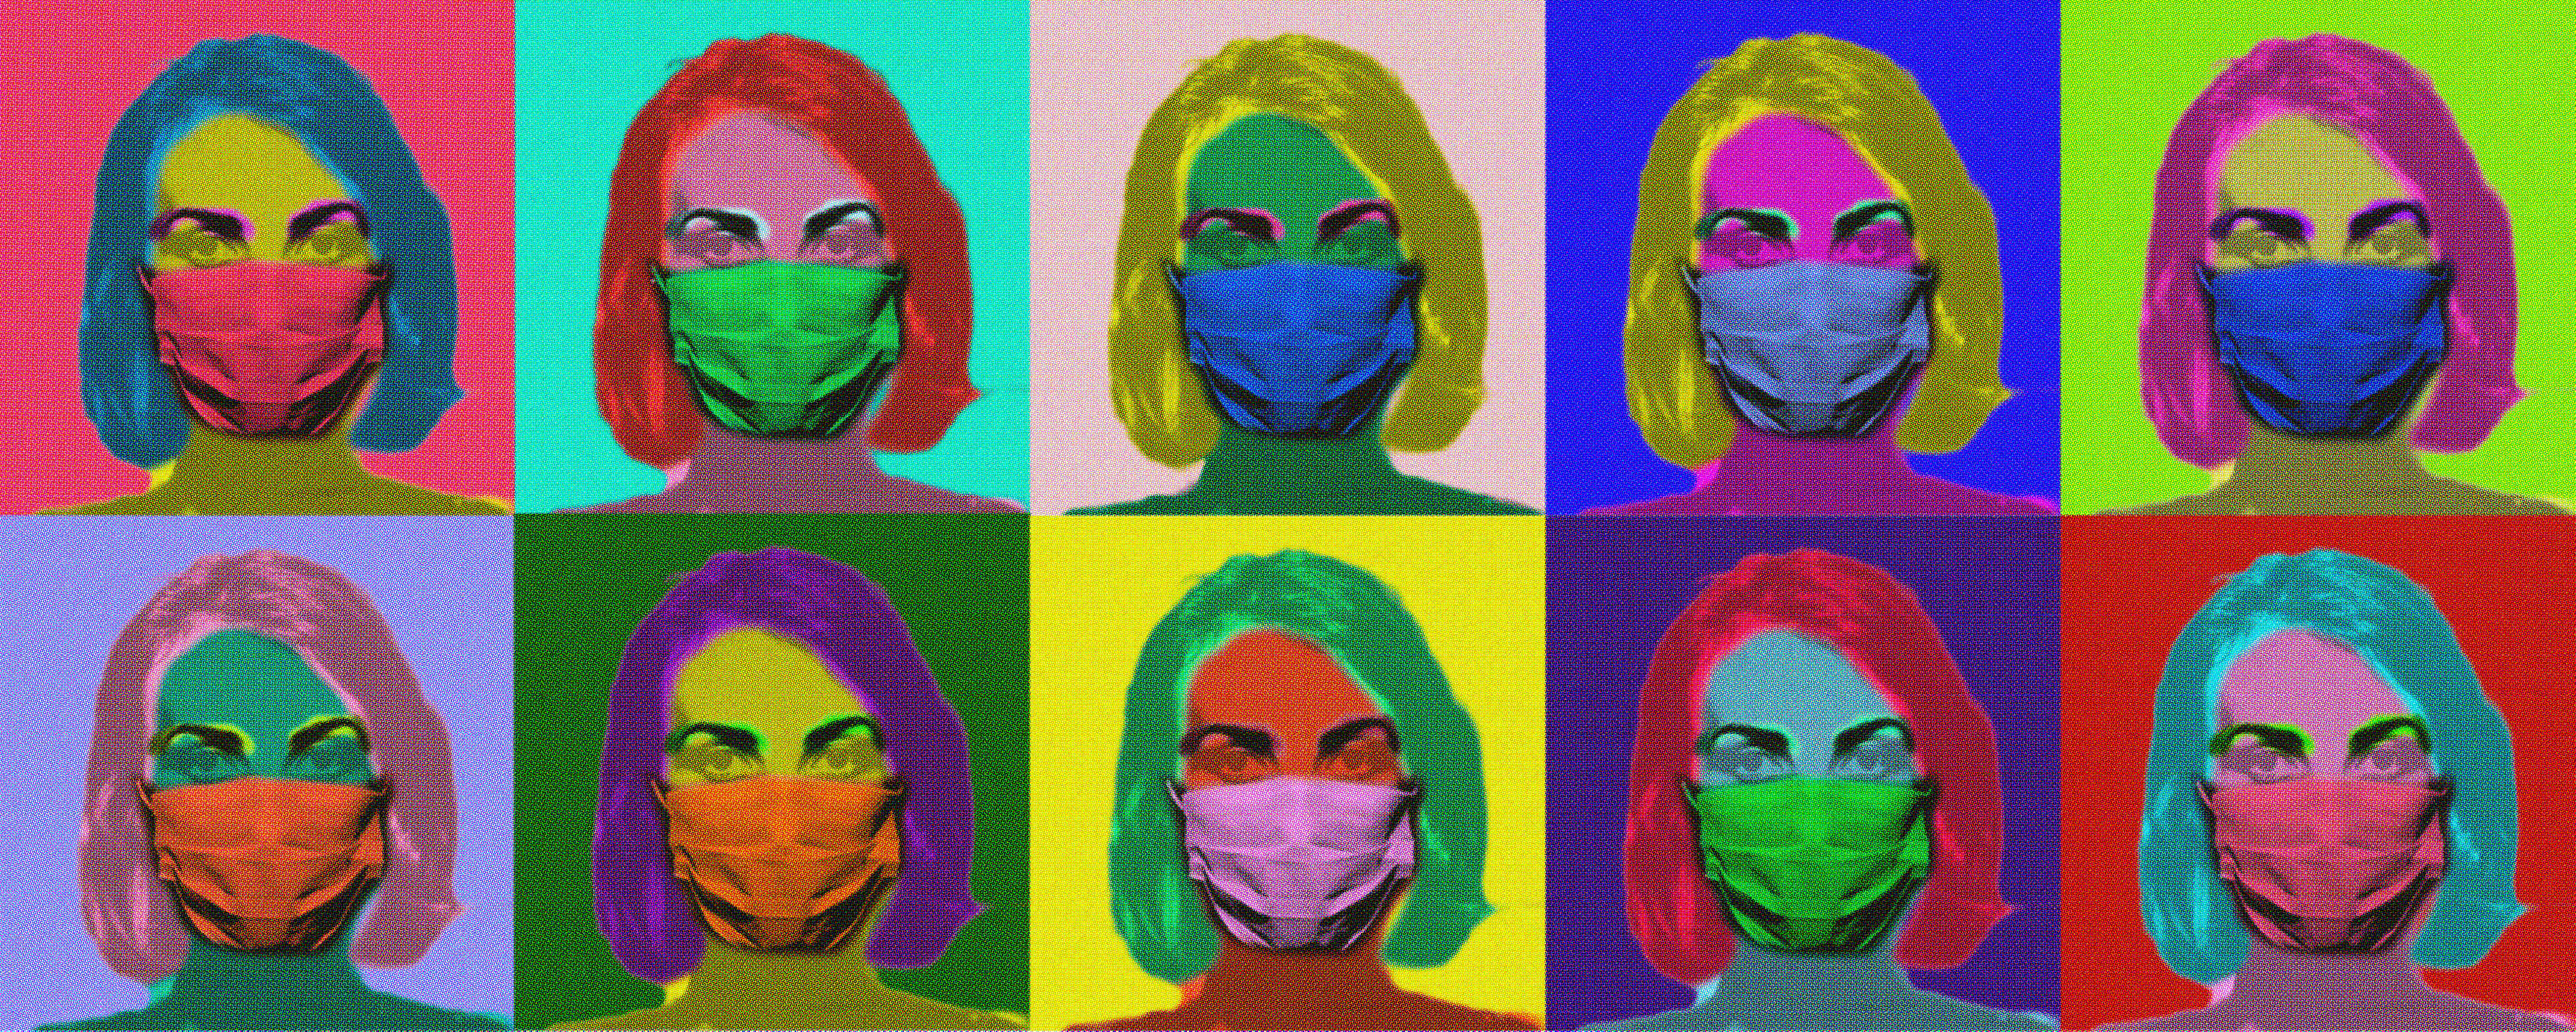 Andy Warhol style digital art with a women wearing a mask in colorful silk screen colors in a repeated grid.